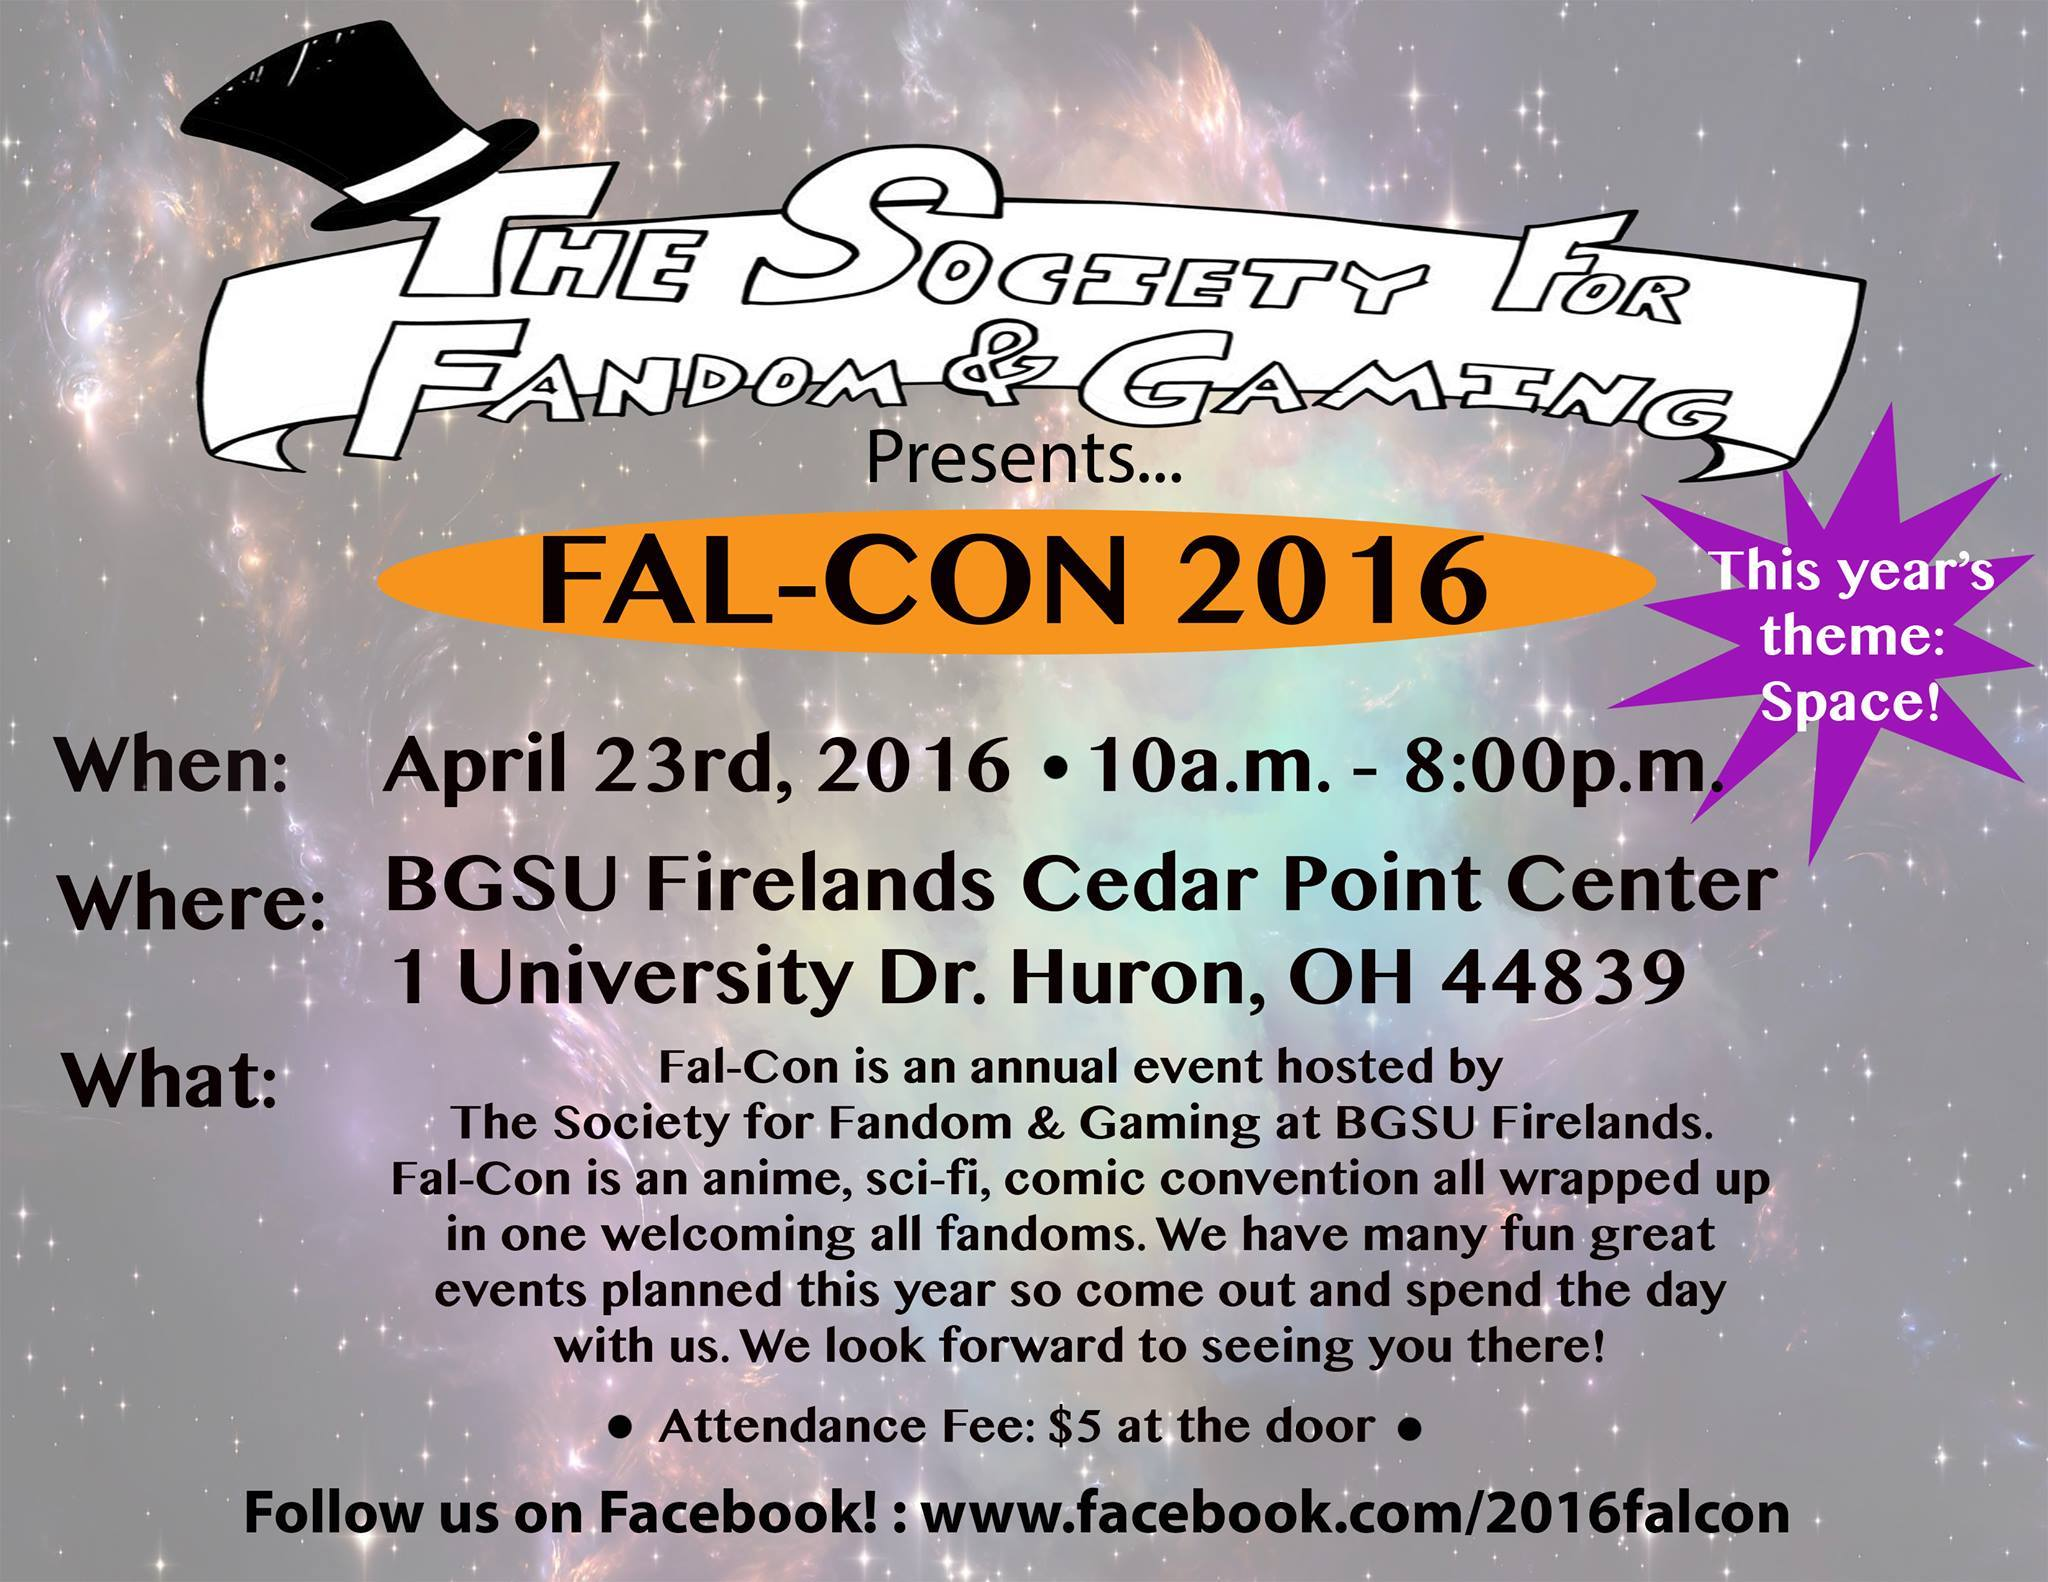 A flyer for FalCon 2016.